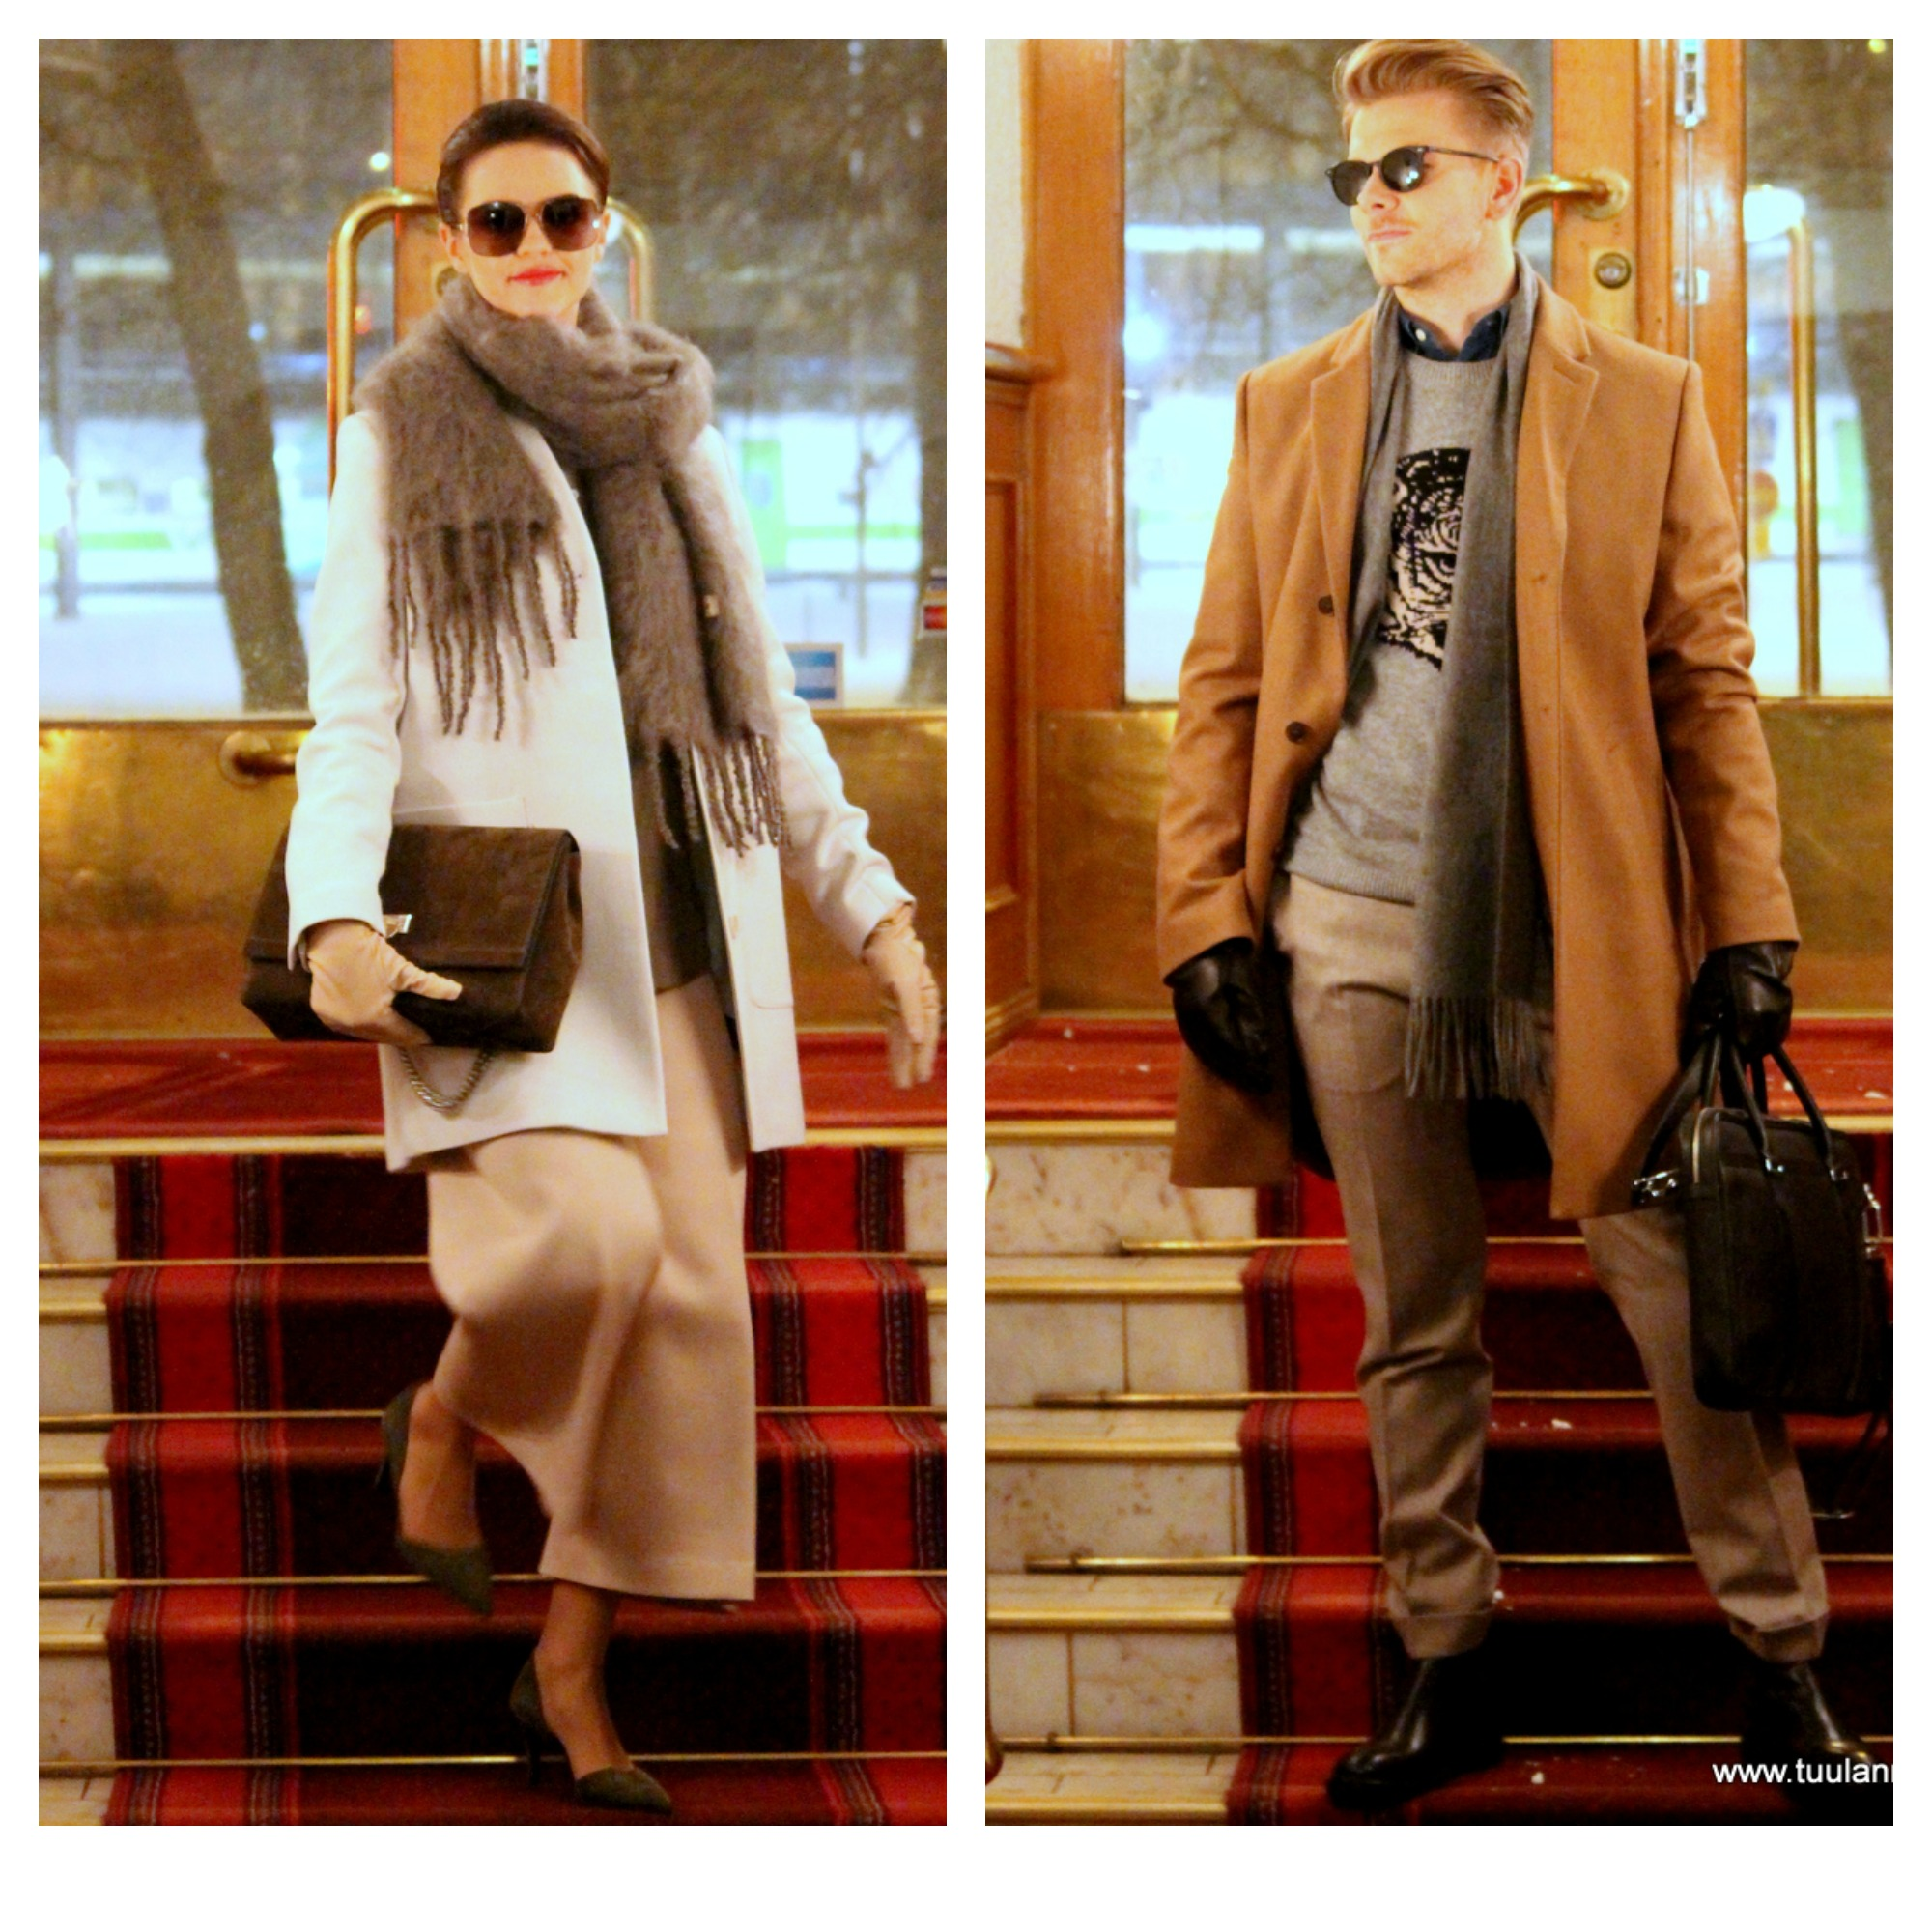 She in Filippa K coat & trousers & shirt & gloves, Decadent bag, Balmuir scarf, By Malene Birger shoes. He in Tiger of Sweden coat & knit & shirt & gloves & bag & shoes, Oscar Jacobson trousers, Balmuir scarf